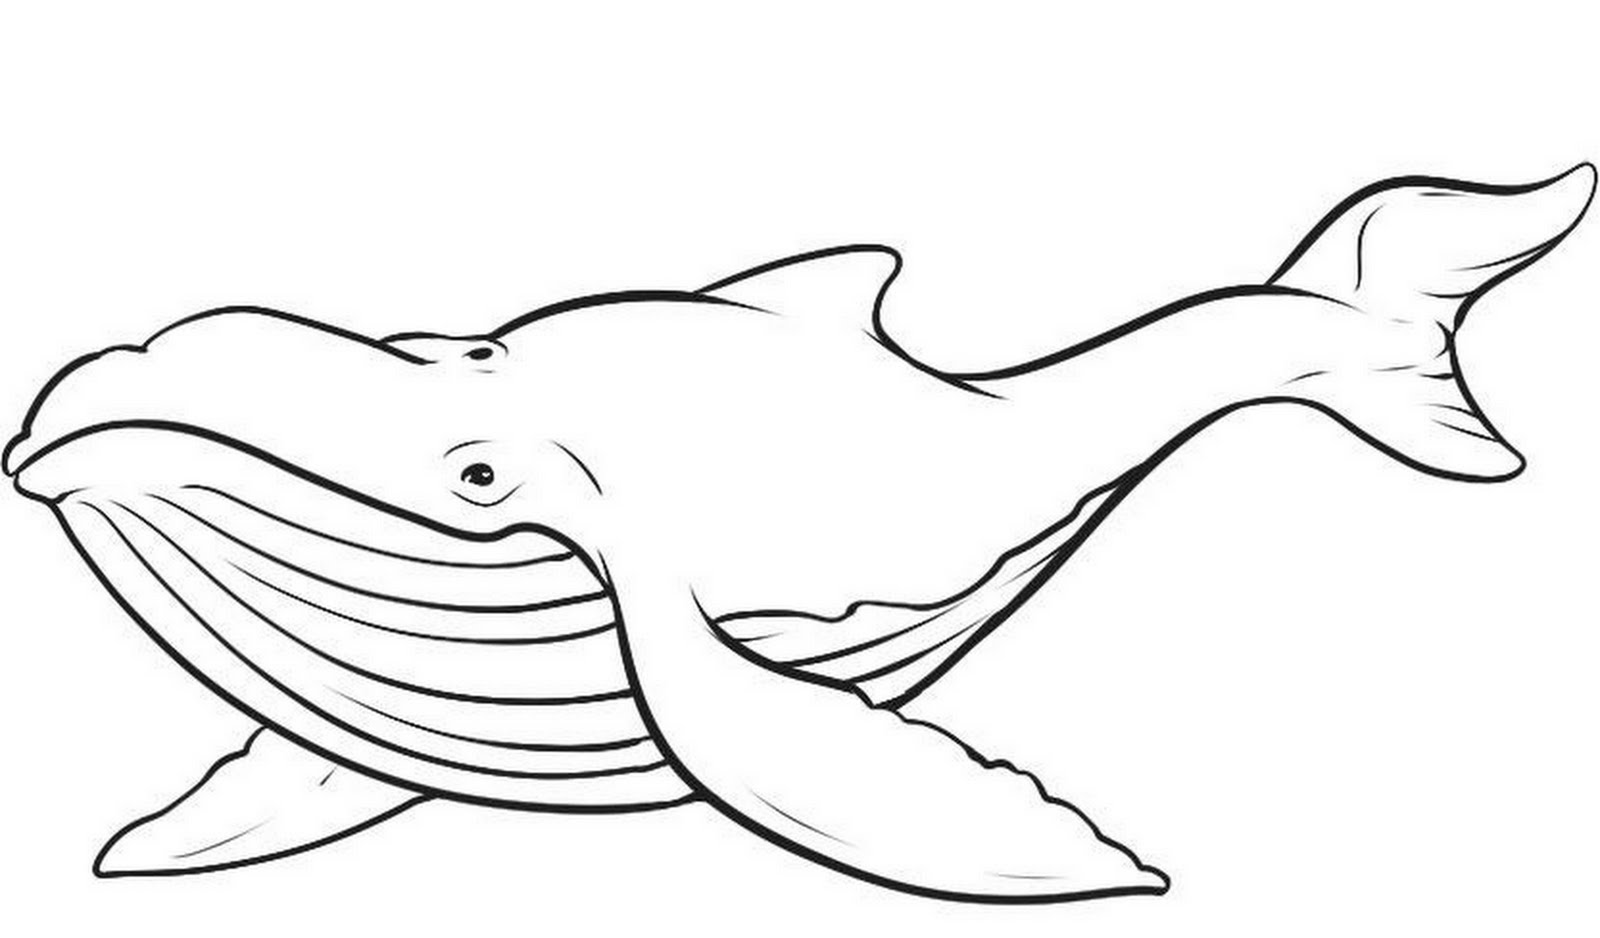 Whale coloring pages images